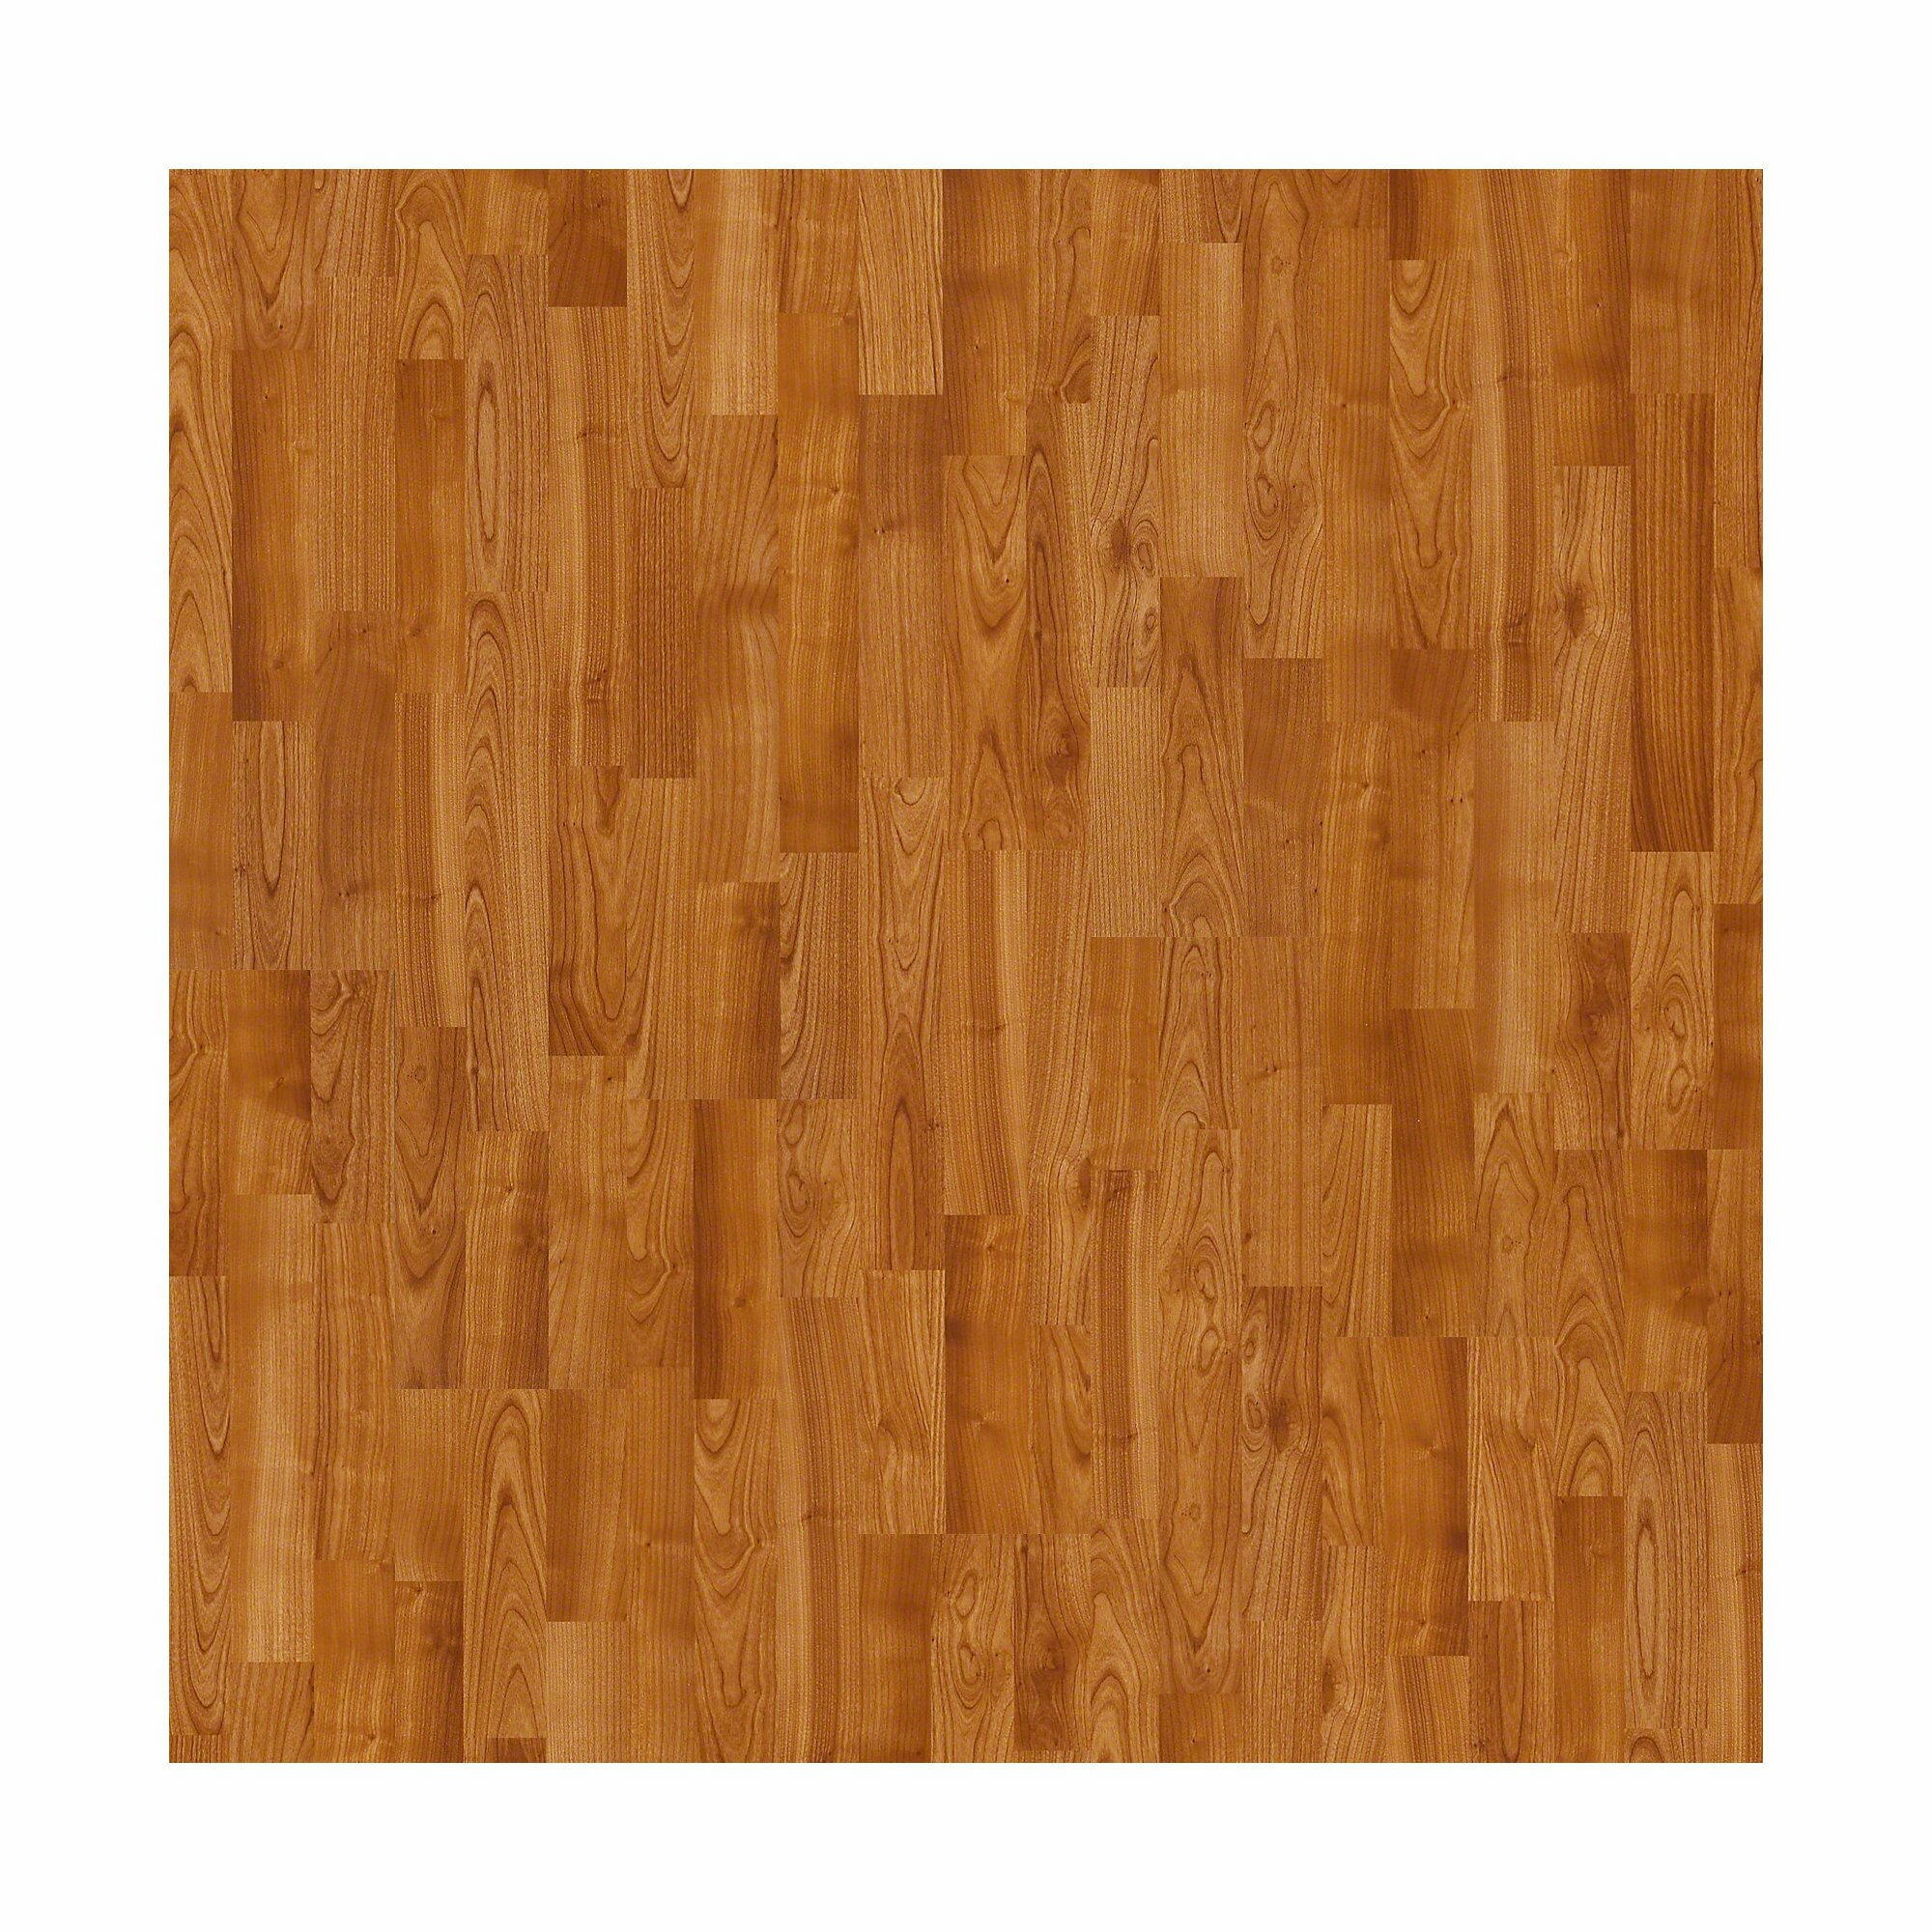 Cherry Laminate Flooring native cherry laminate l4000 Fairfax Cherry Laminate In Crosspointe